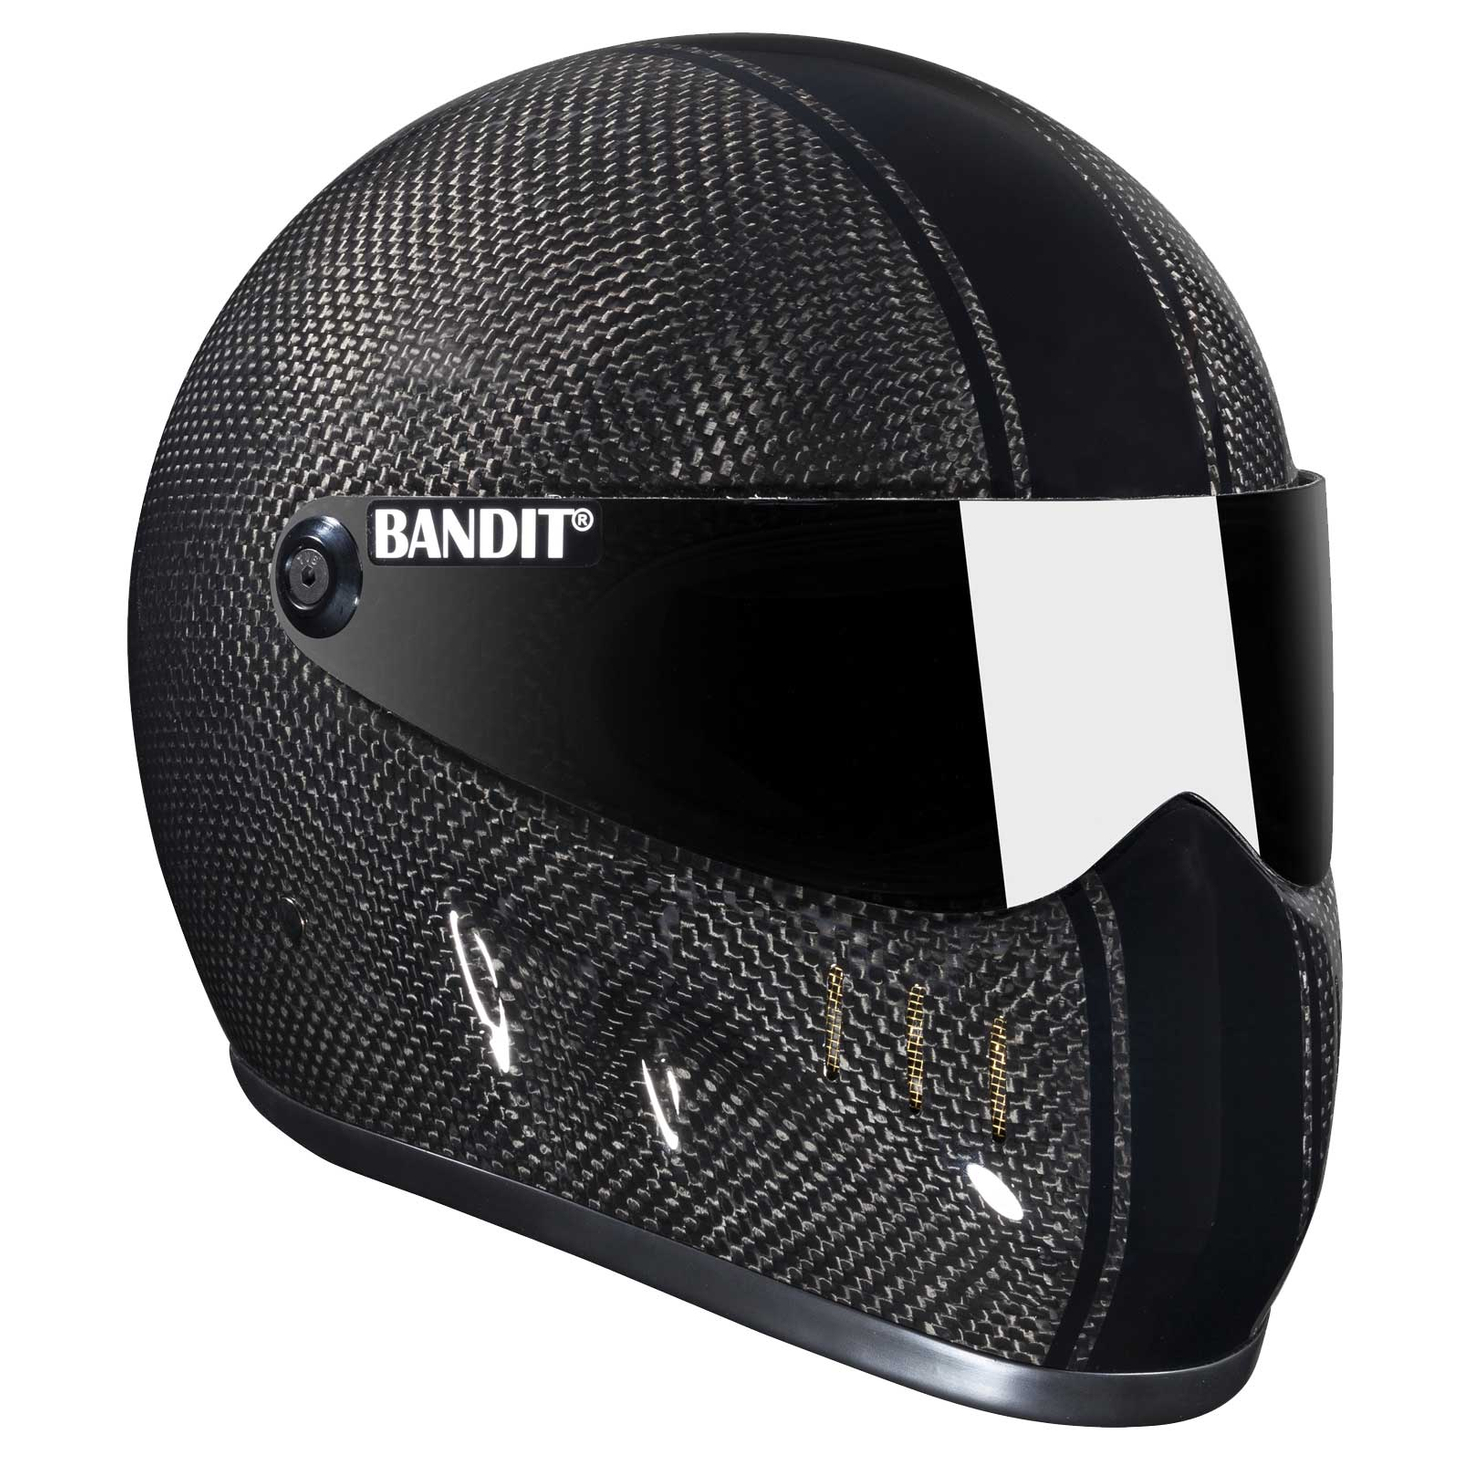 Bandit - XXR Carbon - New Motorcycle Helmet - for Streetfighter, Mad Max – Picture 2